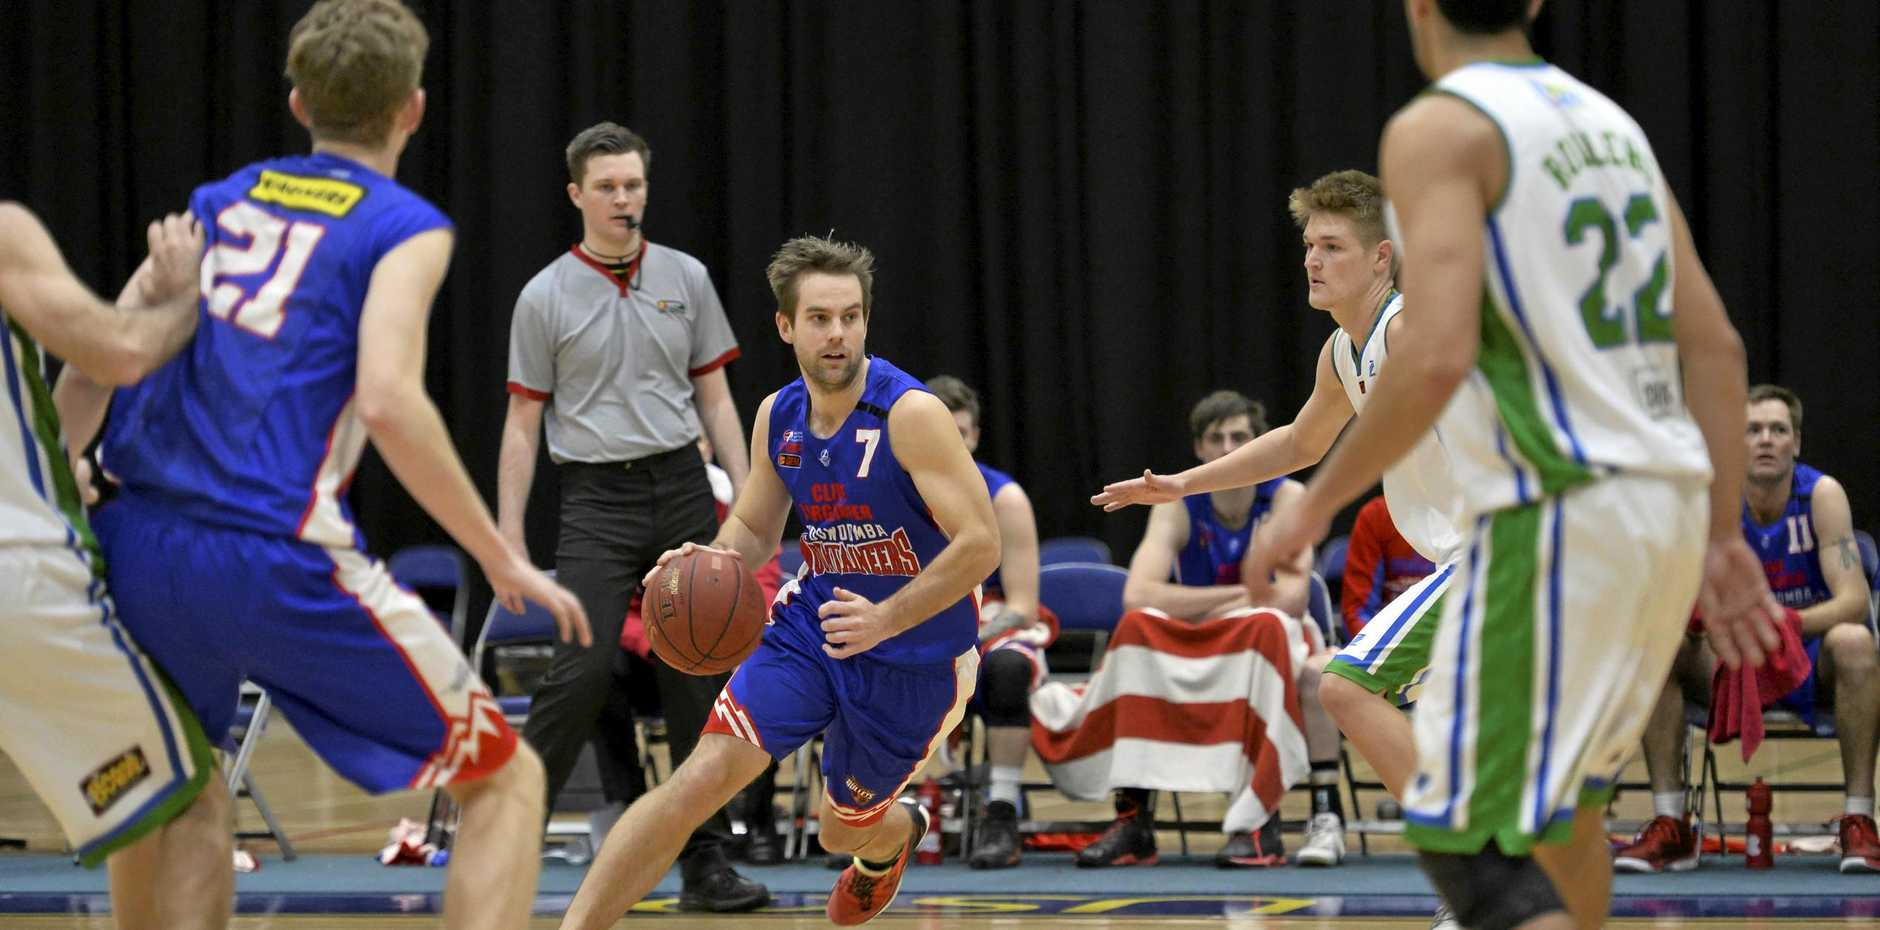 ON COURT: Cameron Weber in action for the Toowoomba Mountaineers. The Mountaineers are currently in negotiations with two coaches for the upcoming QBL season.